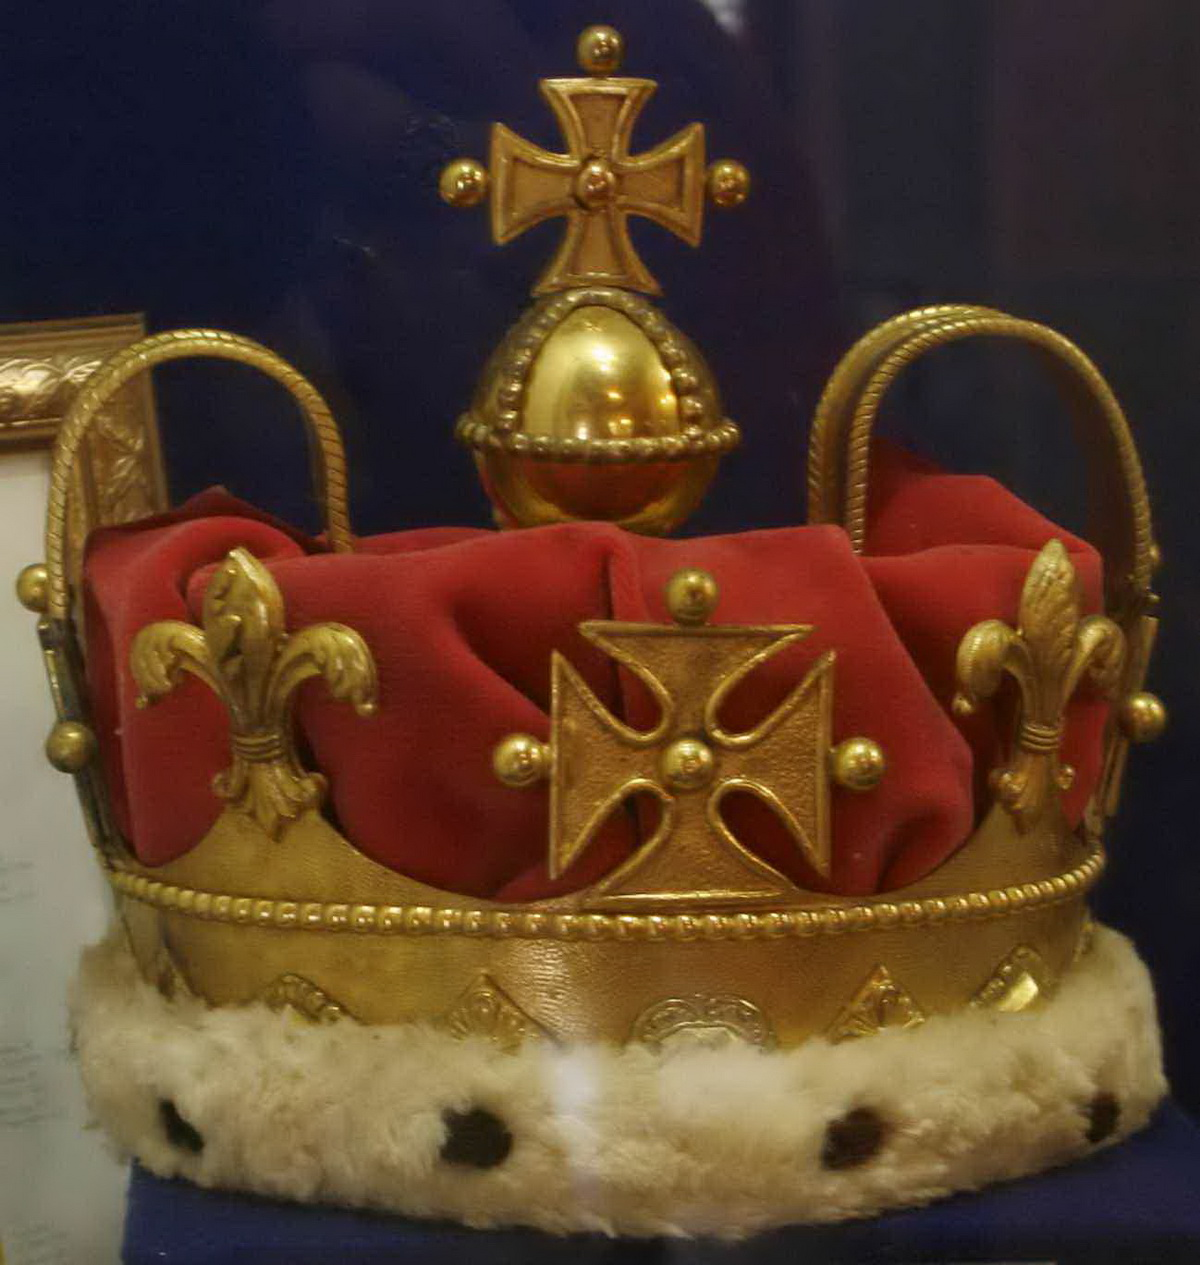 Coronet of Frederick, Prince of Wales